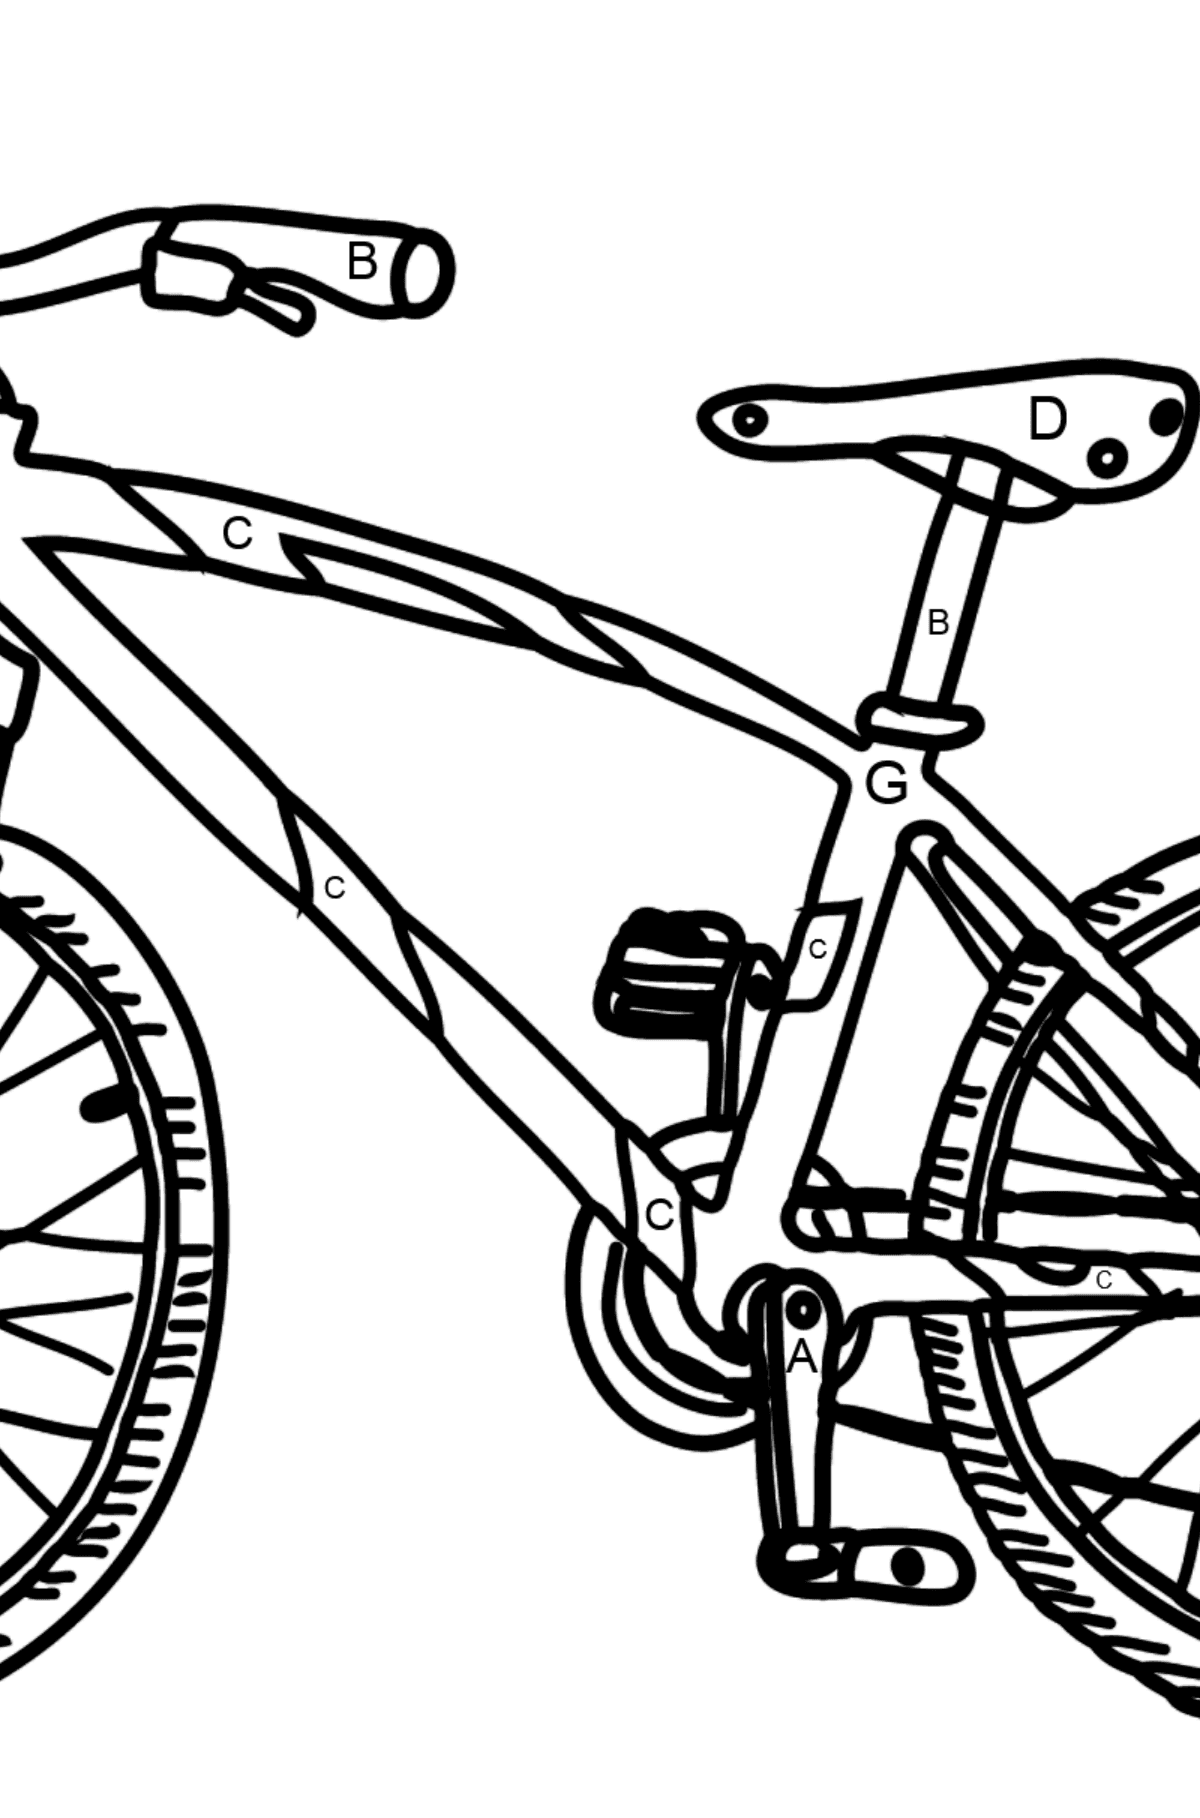 Coloring Page - A Sport Bike - Coloring by Letters for Kids